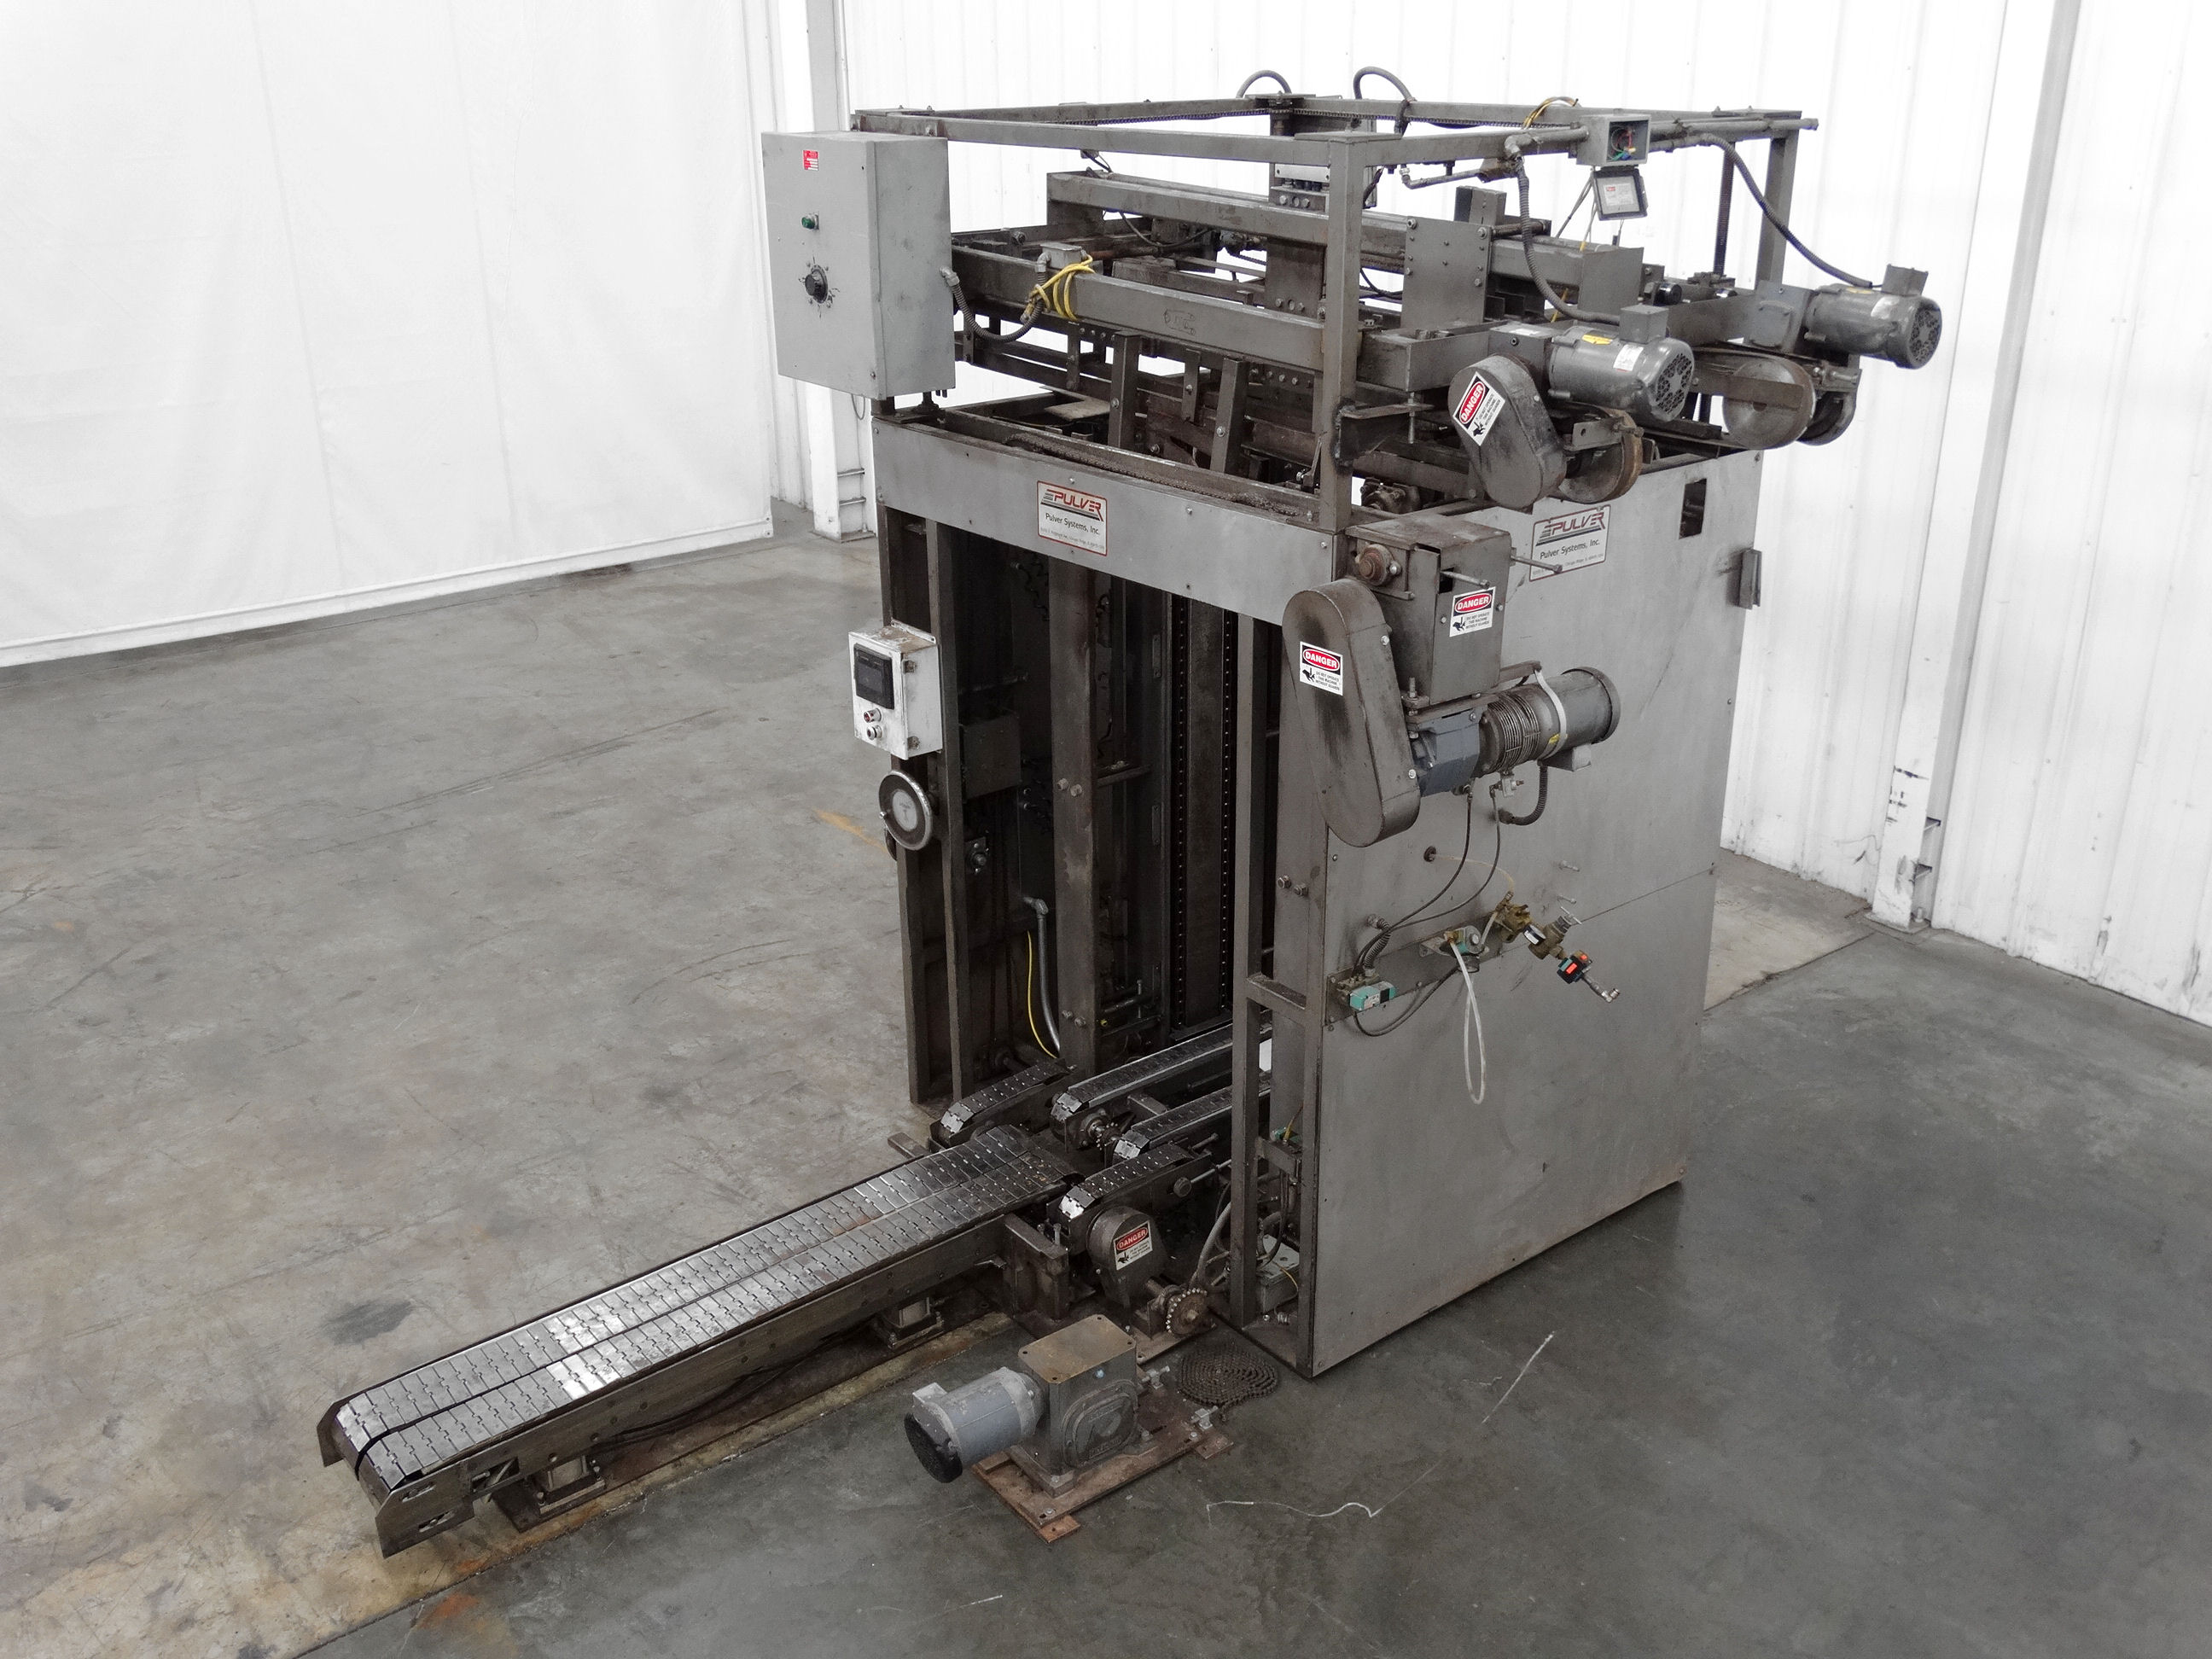 Pulver Stainless Steel Pan Stacker B4409 - Image 7 of 11